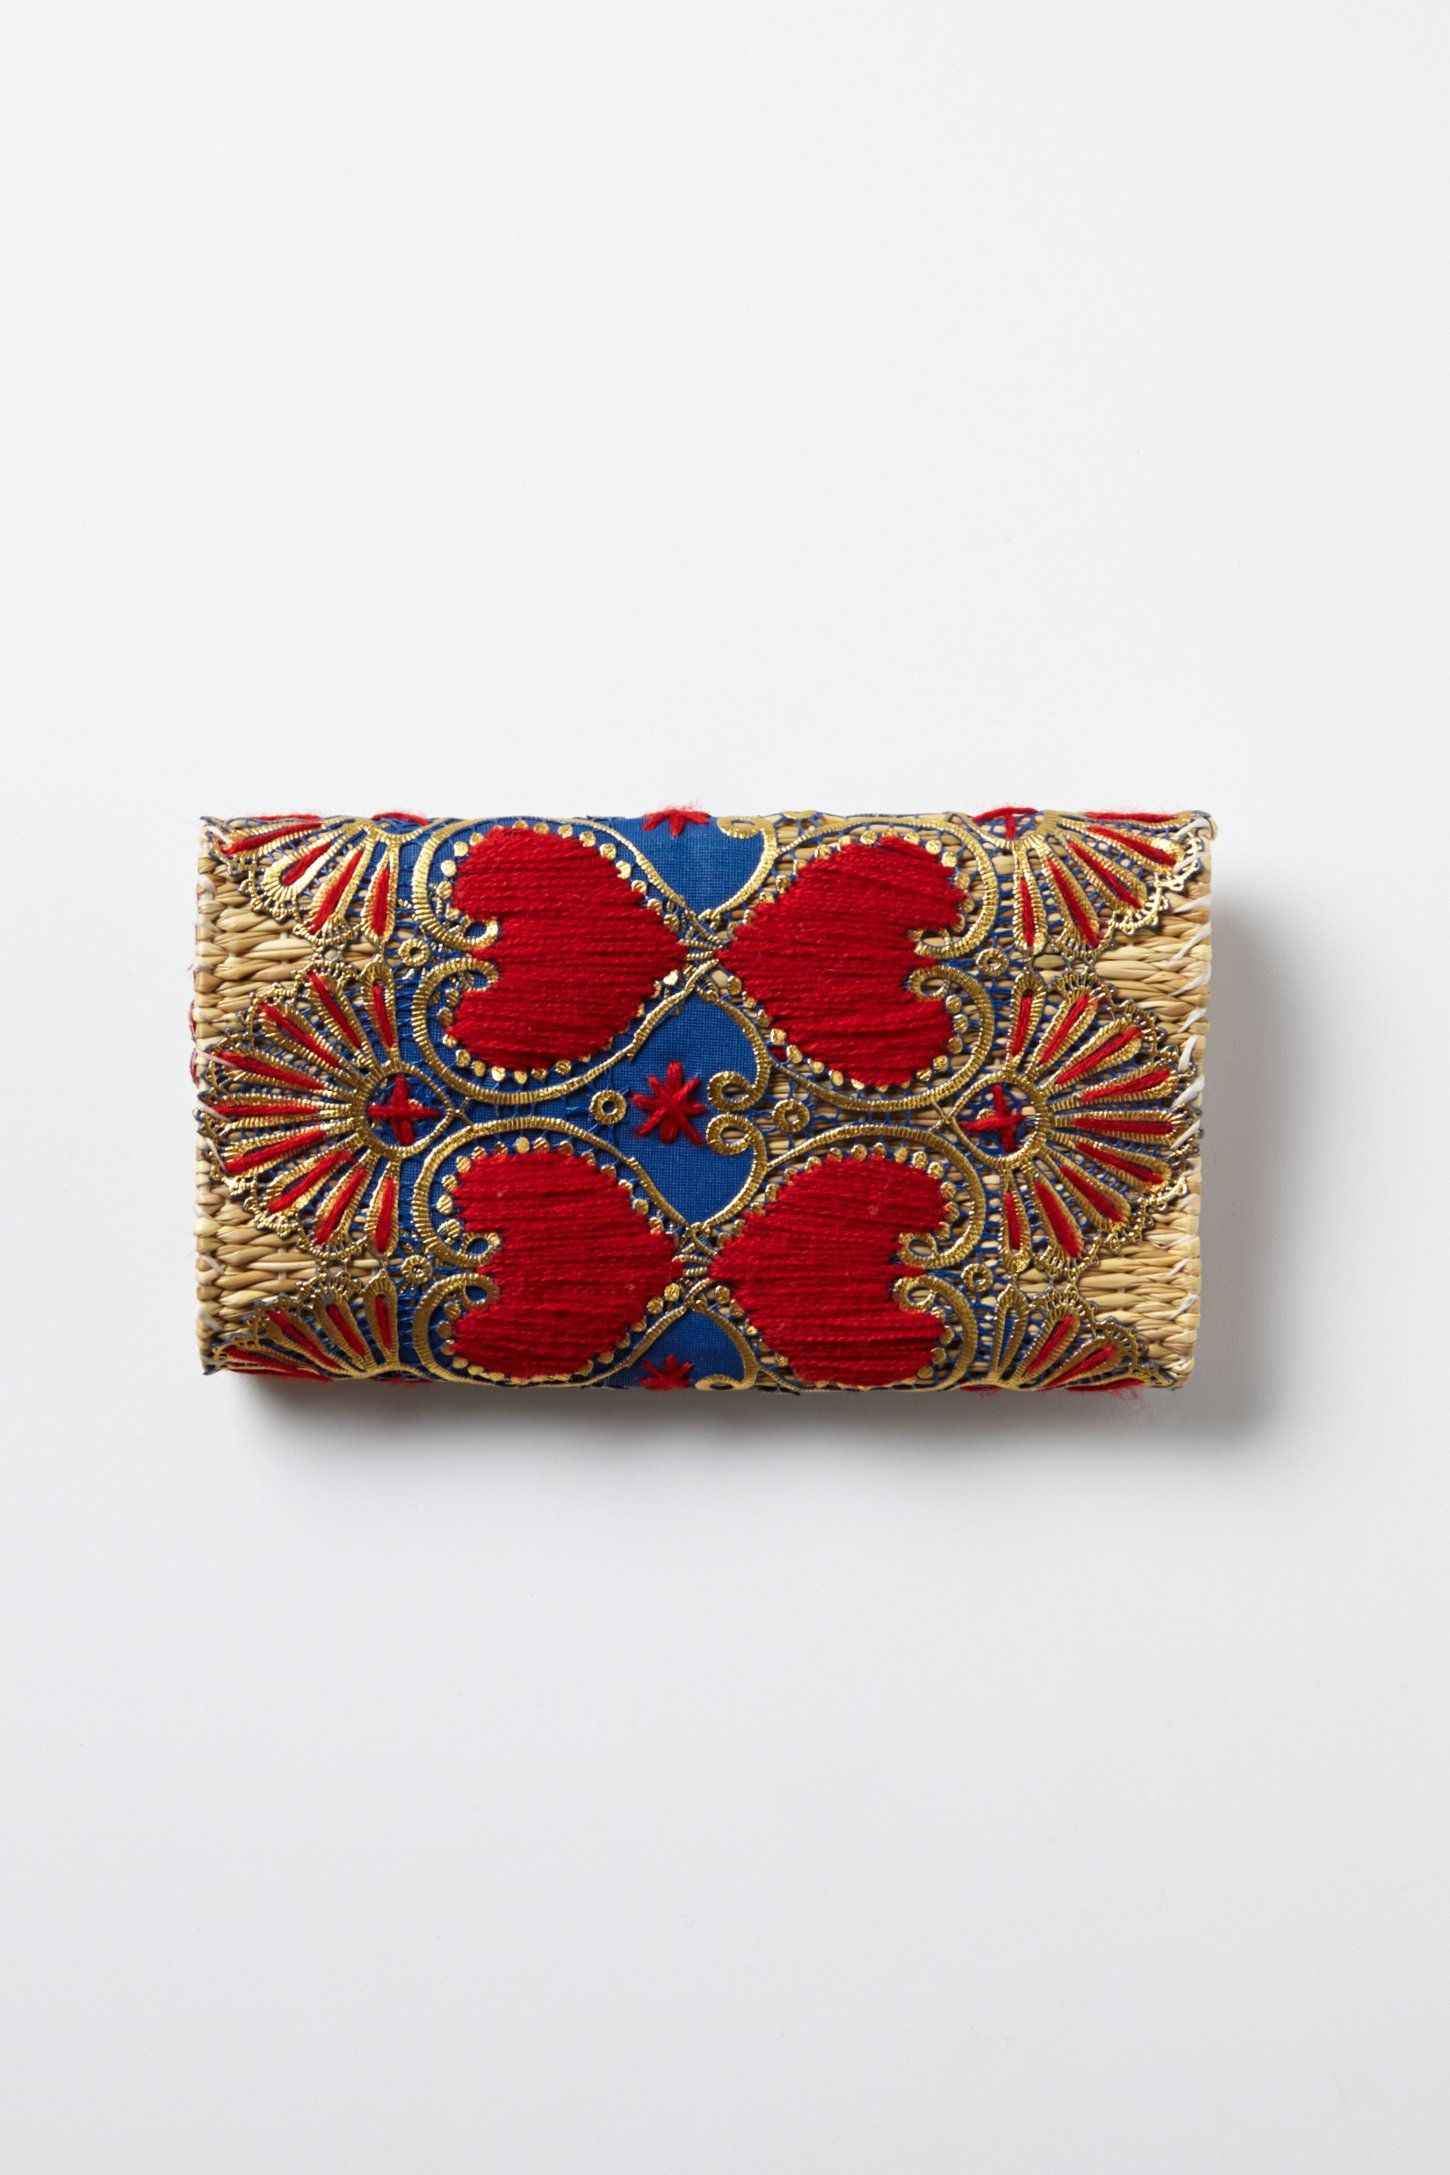 Woven Fireworks Clutch - Anthropologie.com